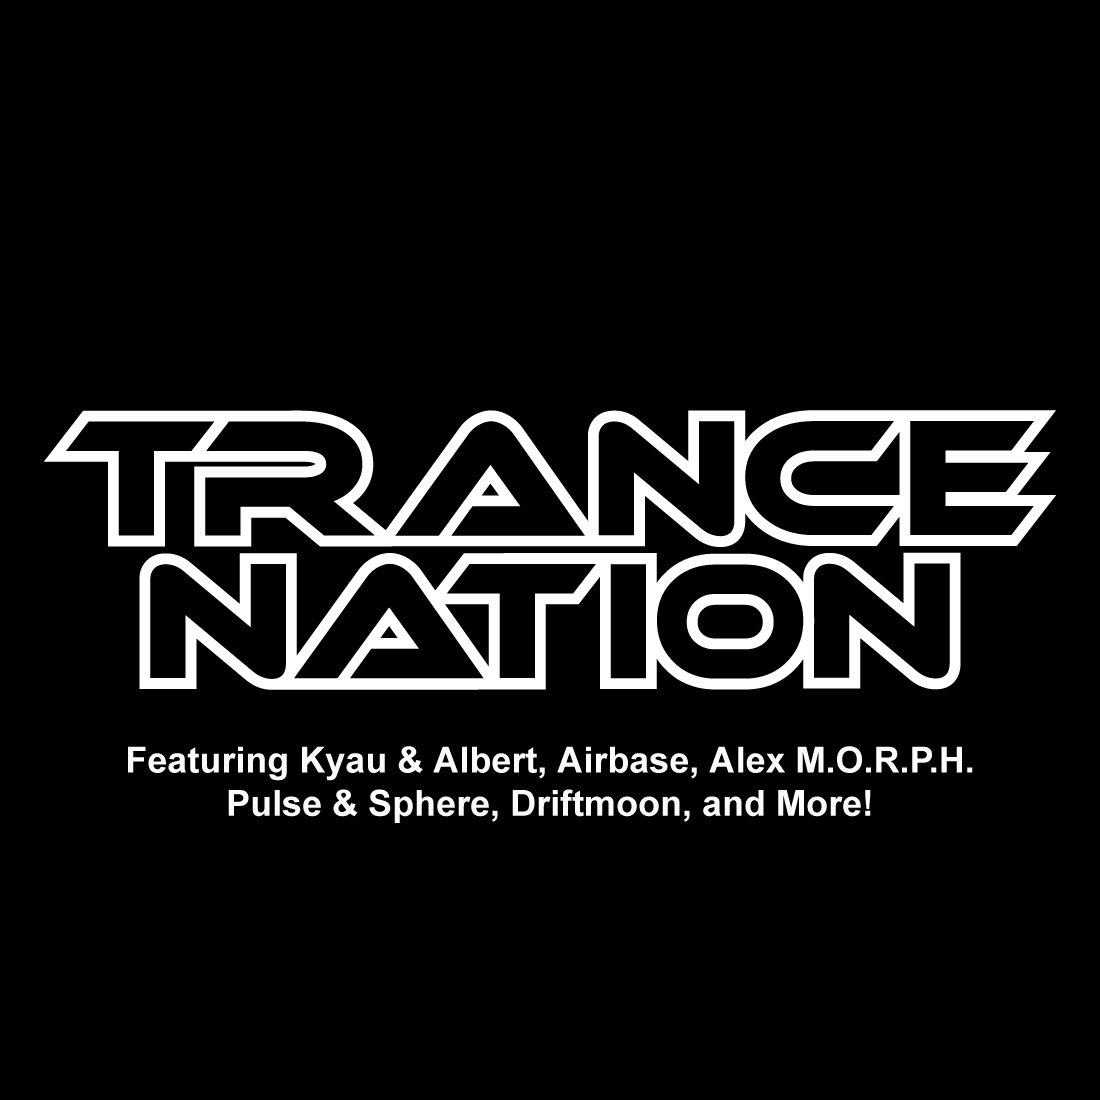 Trance Nation 146: New #Tech &amp; Vocal #Trance. Download NOW at  http://www. trancenation.us  &nbsp;   #edm #edc #Tomorrowland #ade17 #music #techno #CNN<br>http://pic.twitter.com/EpPoP3h5It